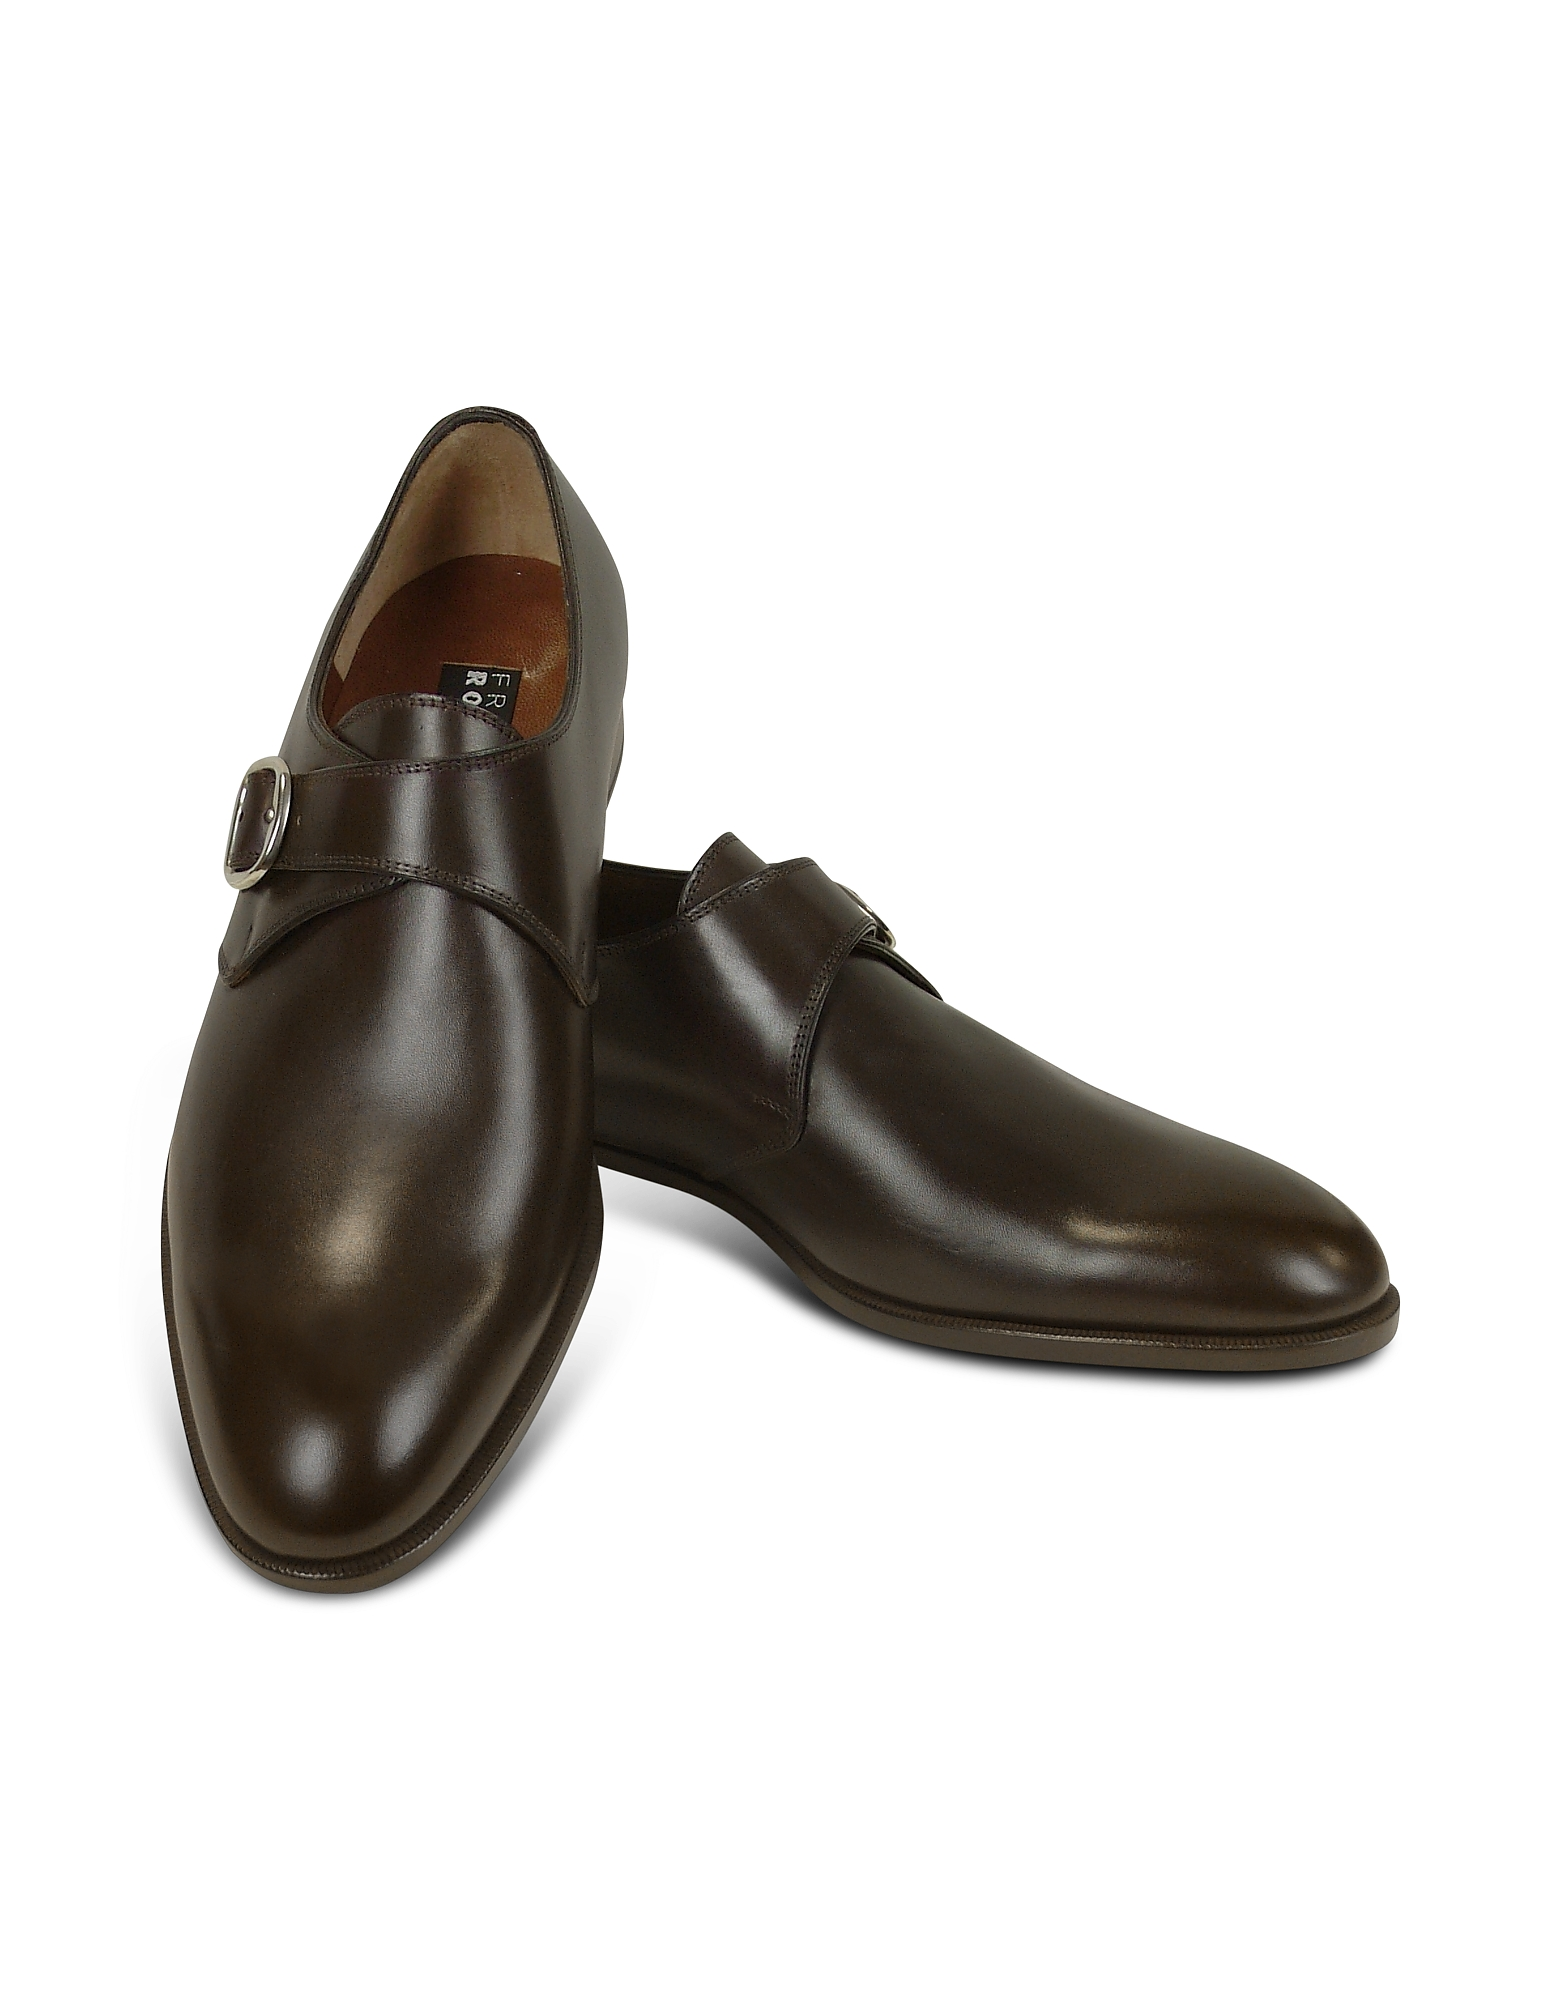 Fratelli Rossetti Shoes, Dark Brown Calf Leather Monk Strap Shoes